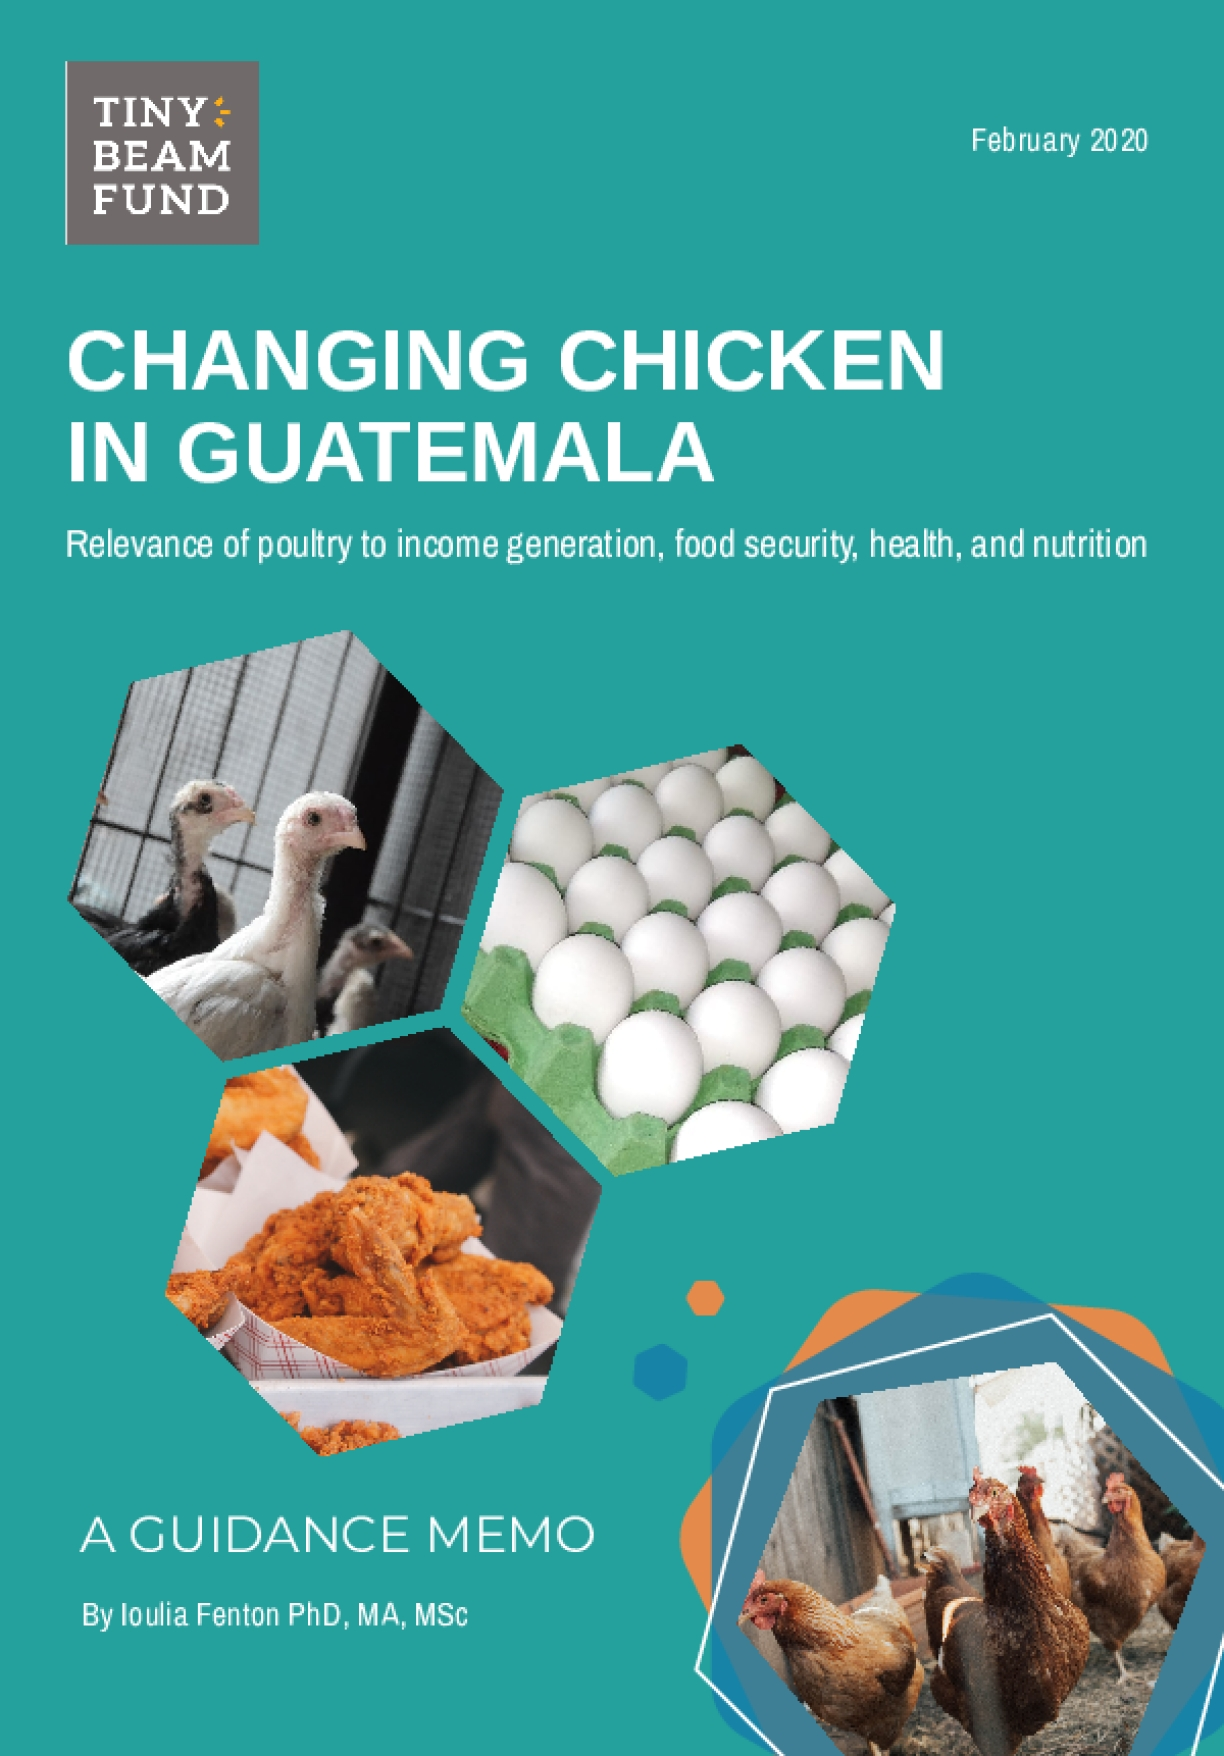 Changing chicken in Guatemala: Relevance of poultry to income generation, food security, health, and nutrition